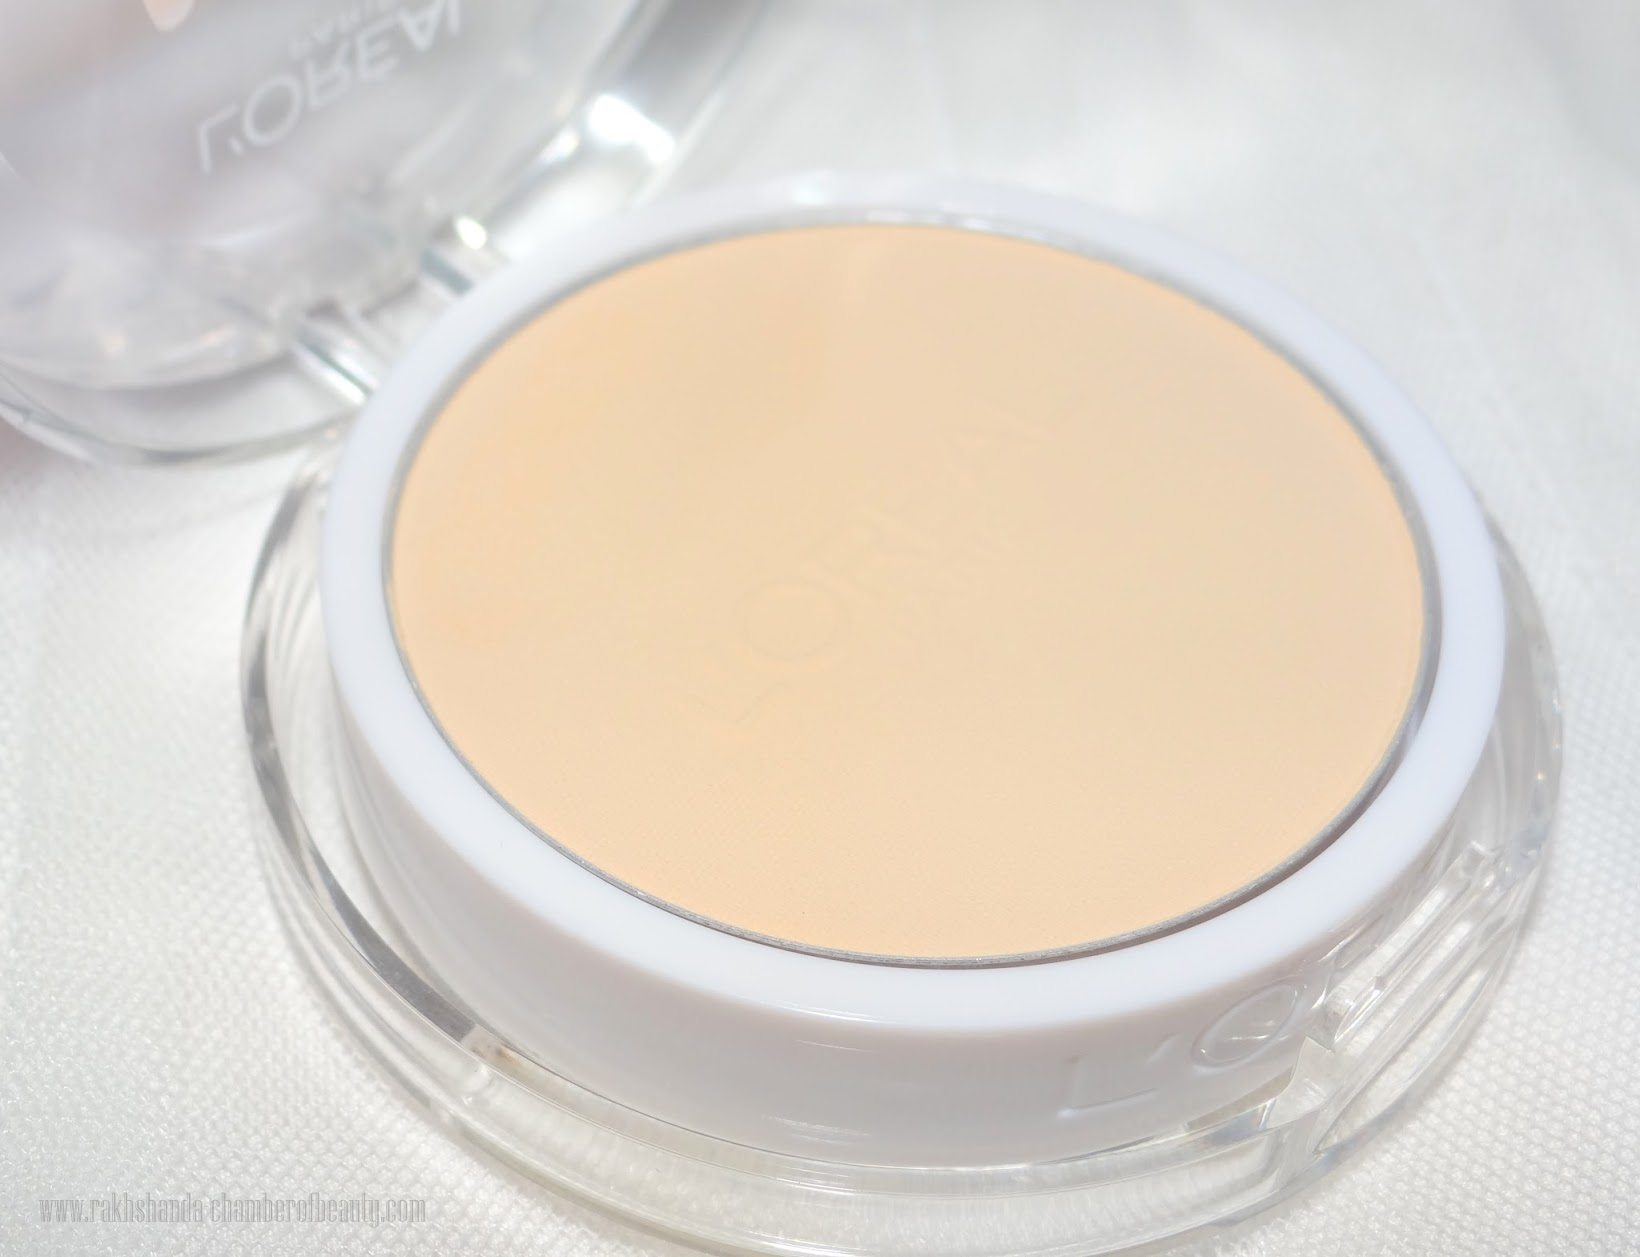 L'Oreal Paris Mat Magique All-in-One Transforming Powder(N2)- review, swatches, Indian beauty blogger, Chamber of Beauty